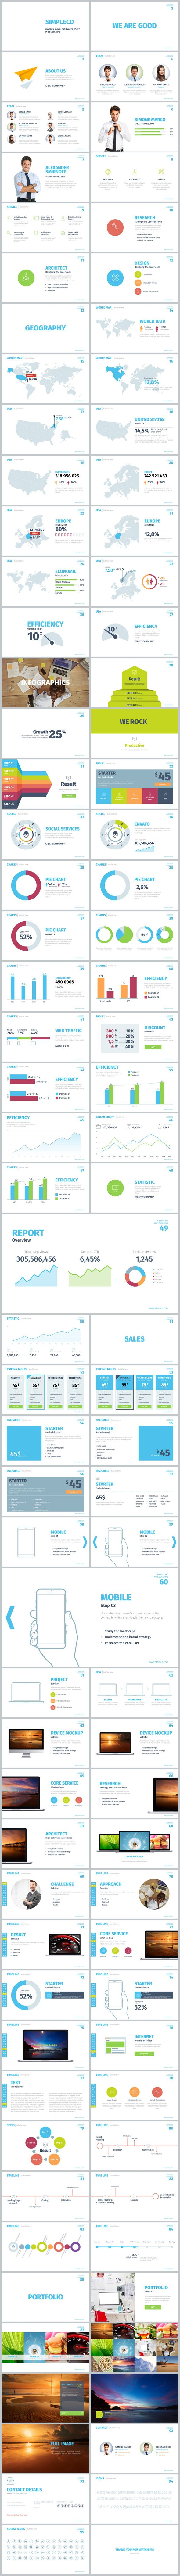 Simple Powerpoint Template #design #slides Download: http://graphicriver.net/item/simpleco-simple-powerpoint-template/13220655?ref=ksioks